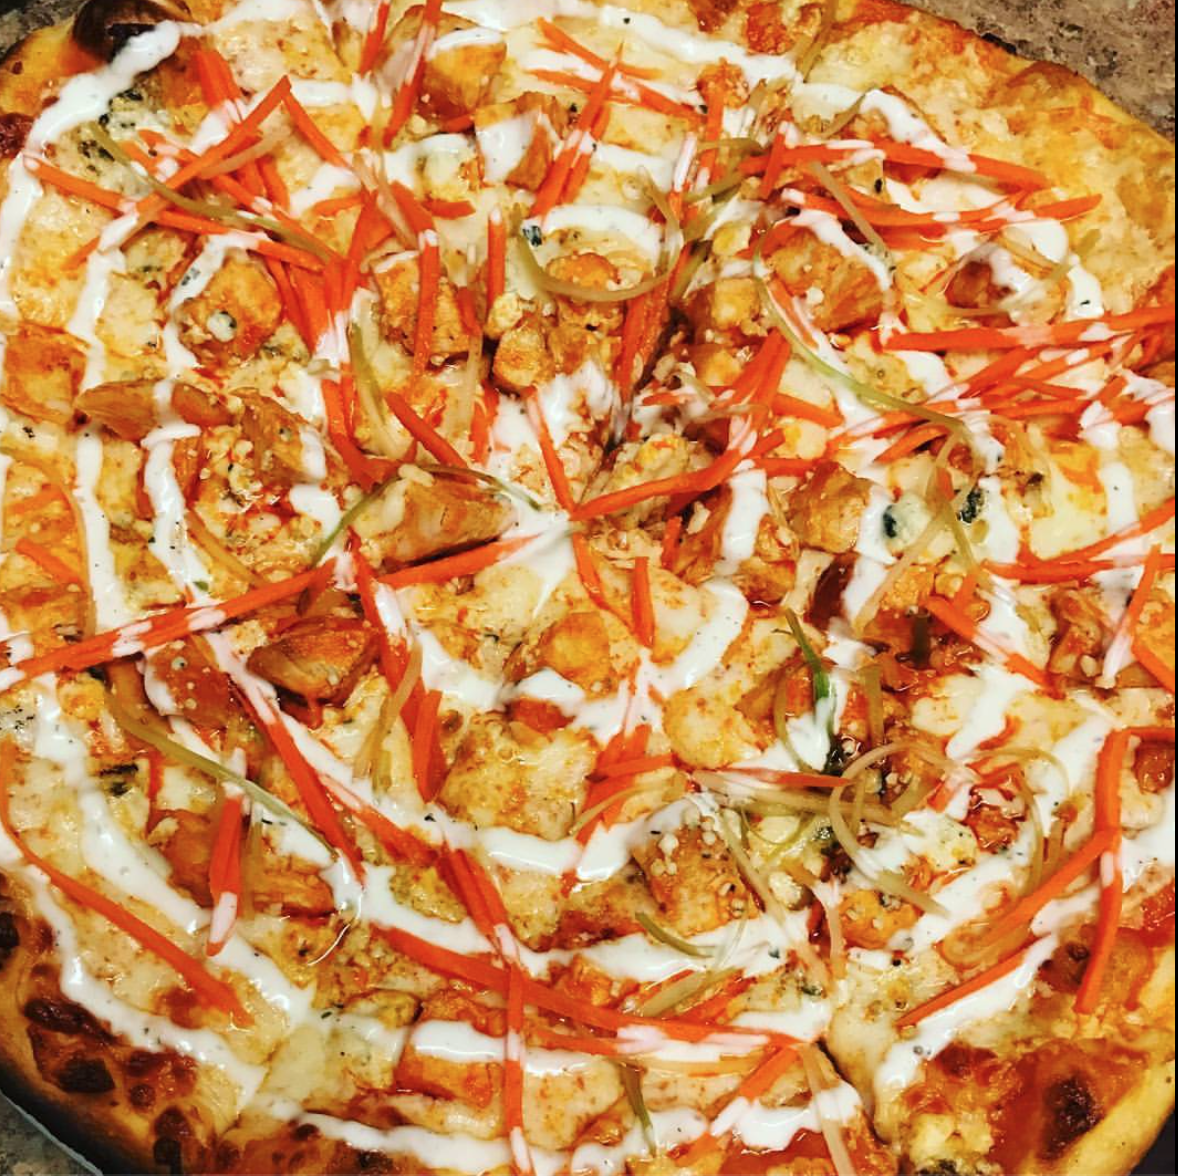 Buffalo Chicken Pizza at State & Allen: Diced Chicken, Shredded Carrots and Celery, Buffalo Sauce, Crumbled Blue Cheese, and a Ranch Drizzle.